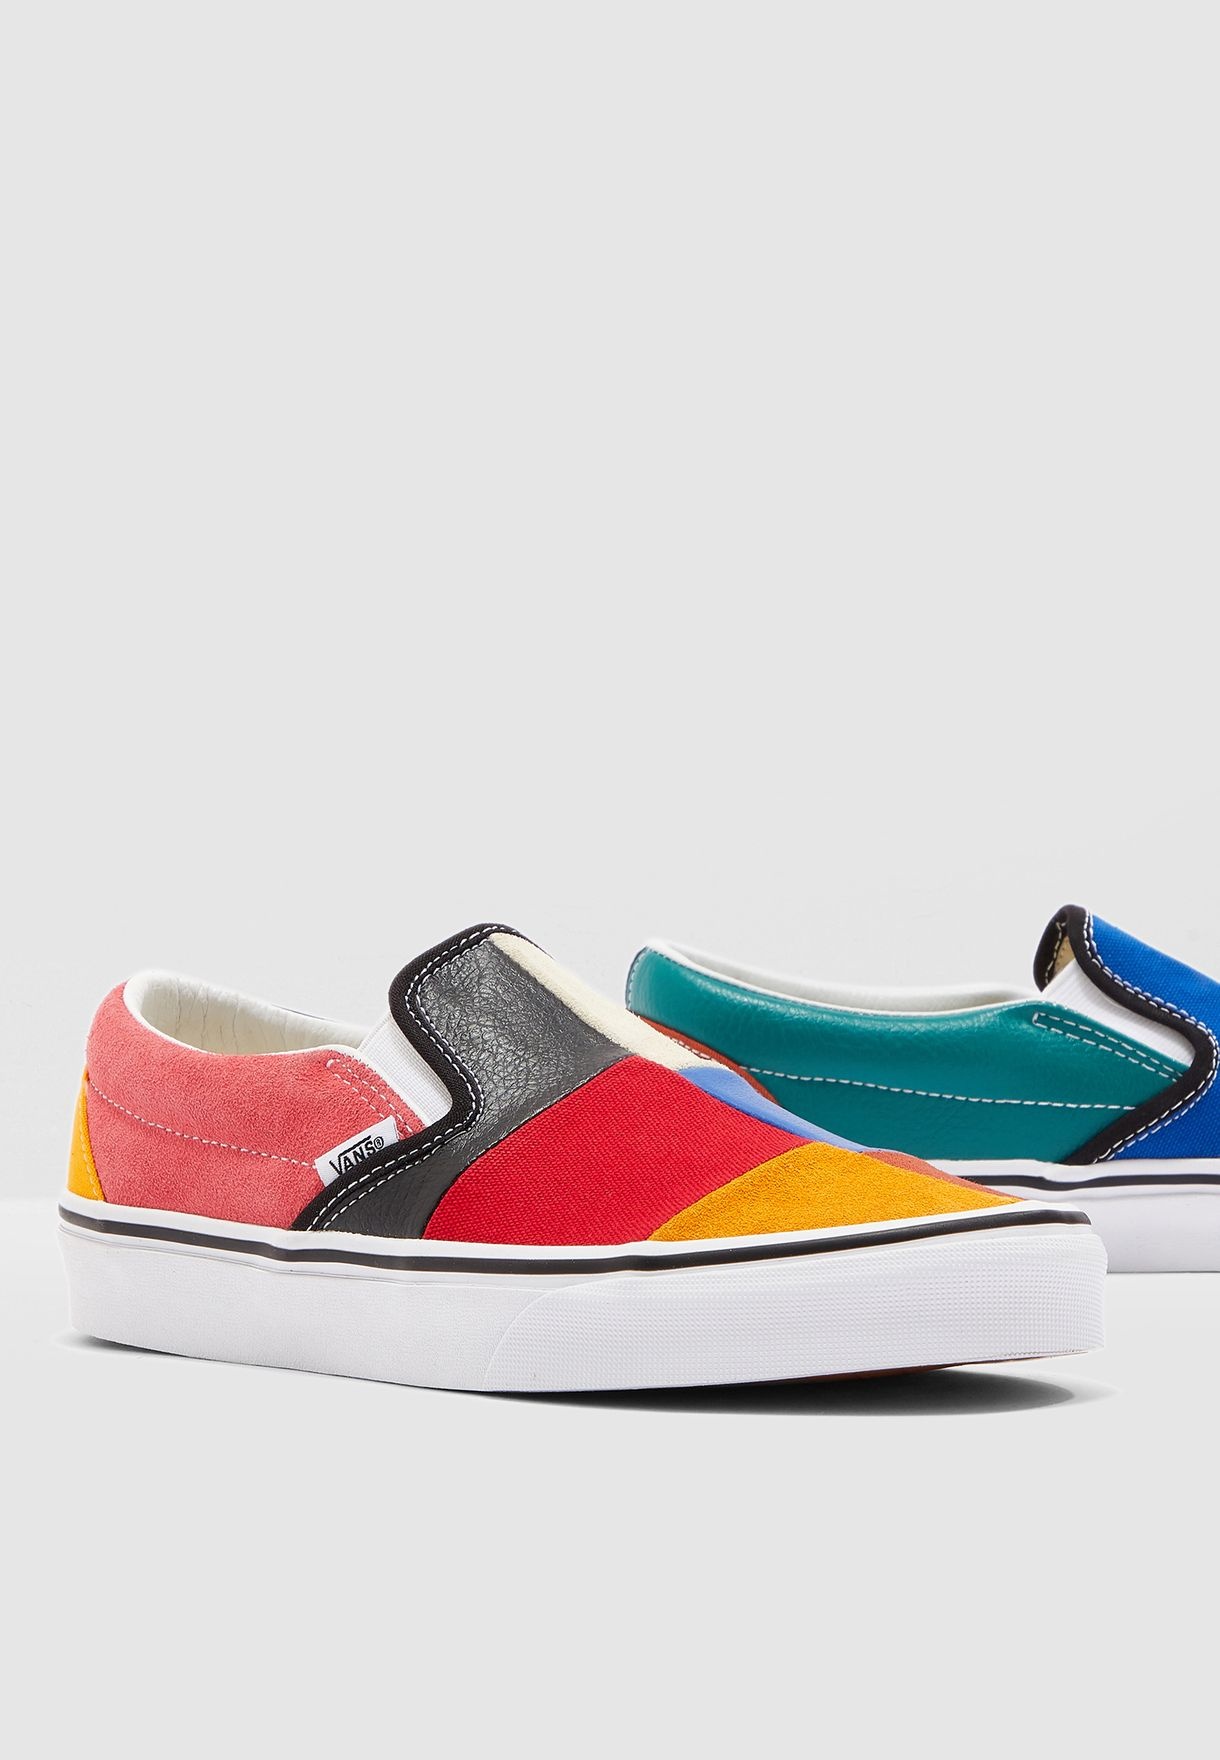 newest style of unequal in performance unique design Classic Patchwork Slip-On